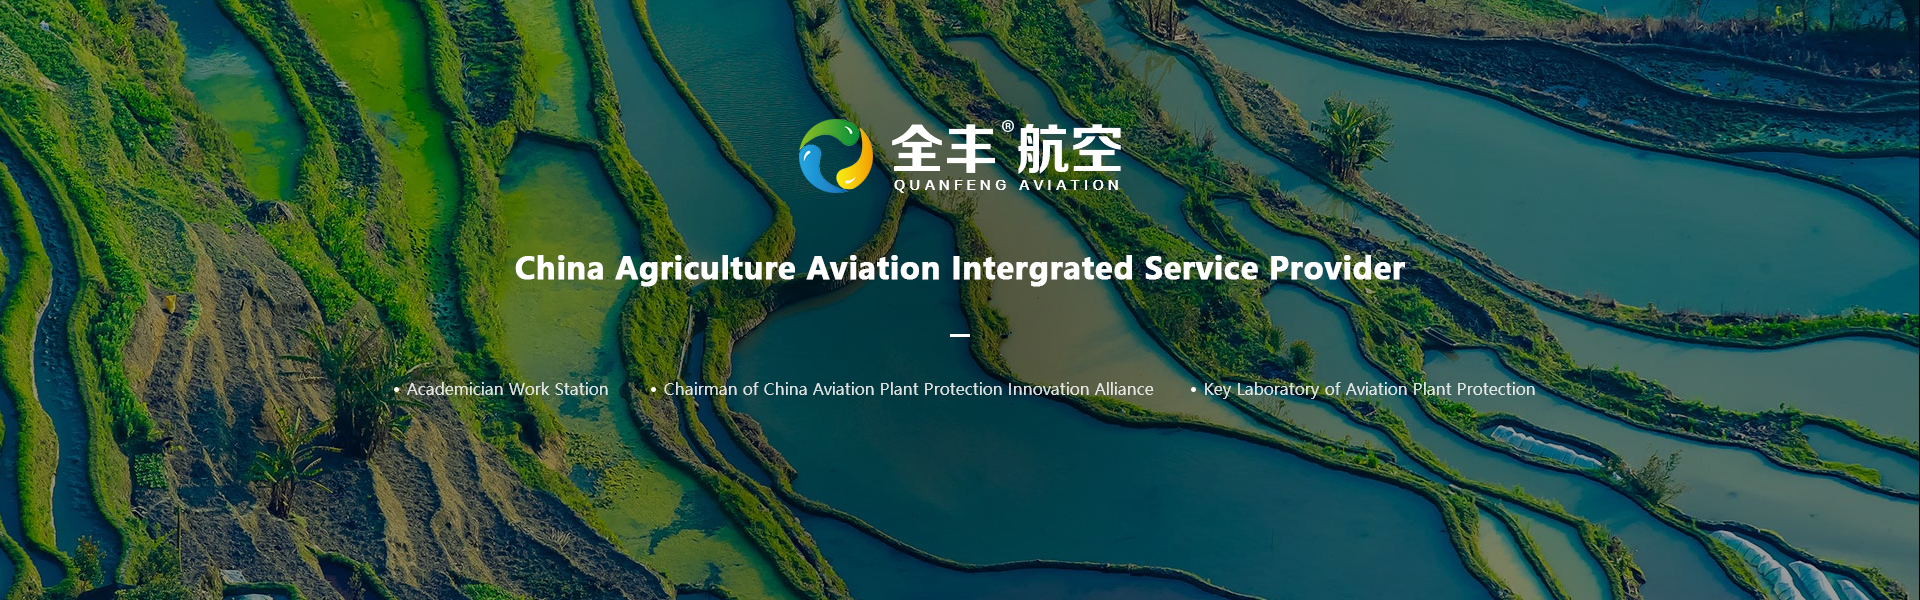 Anyang Quanfeng Aviation Plant Protection Technology Co., Ltd.